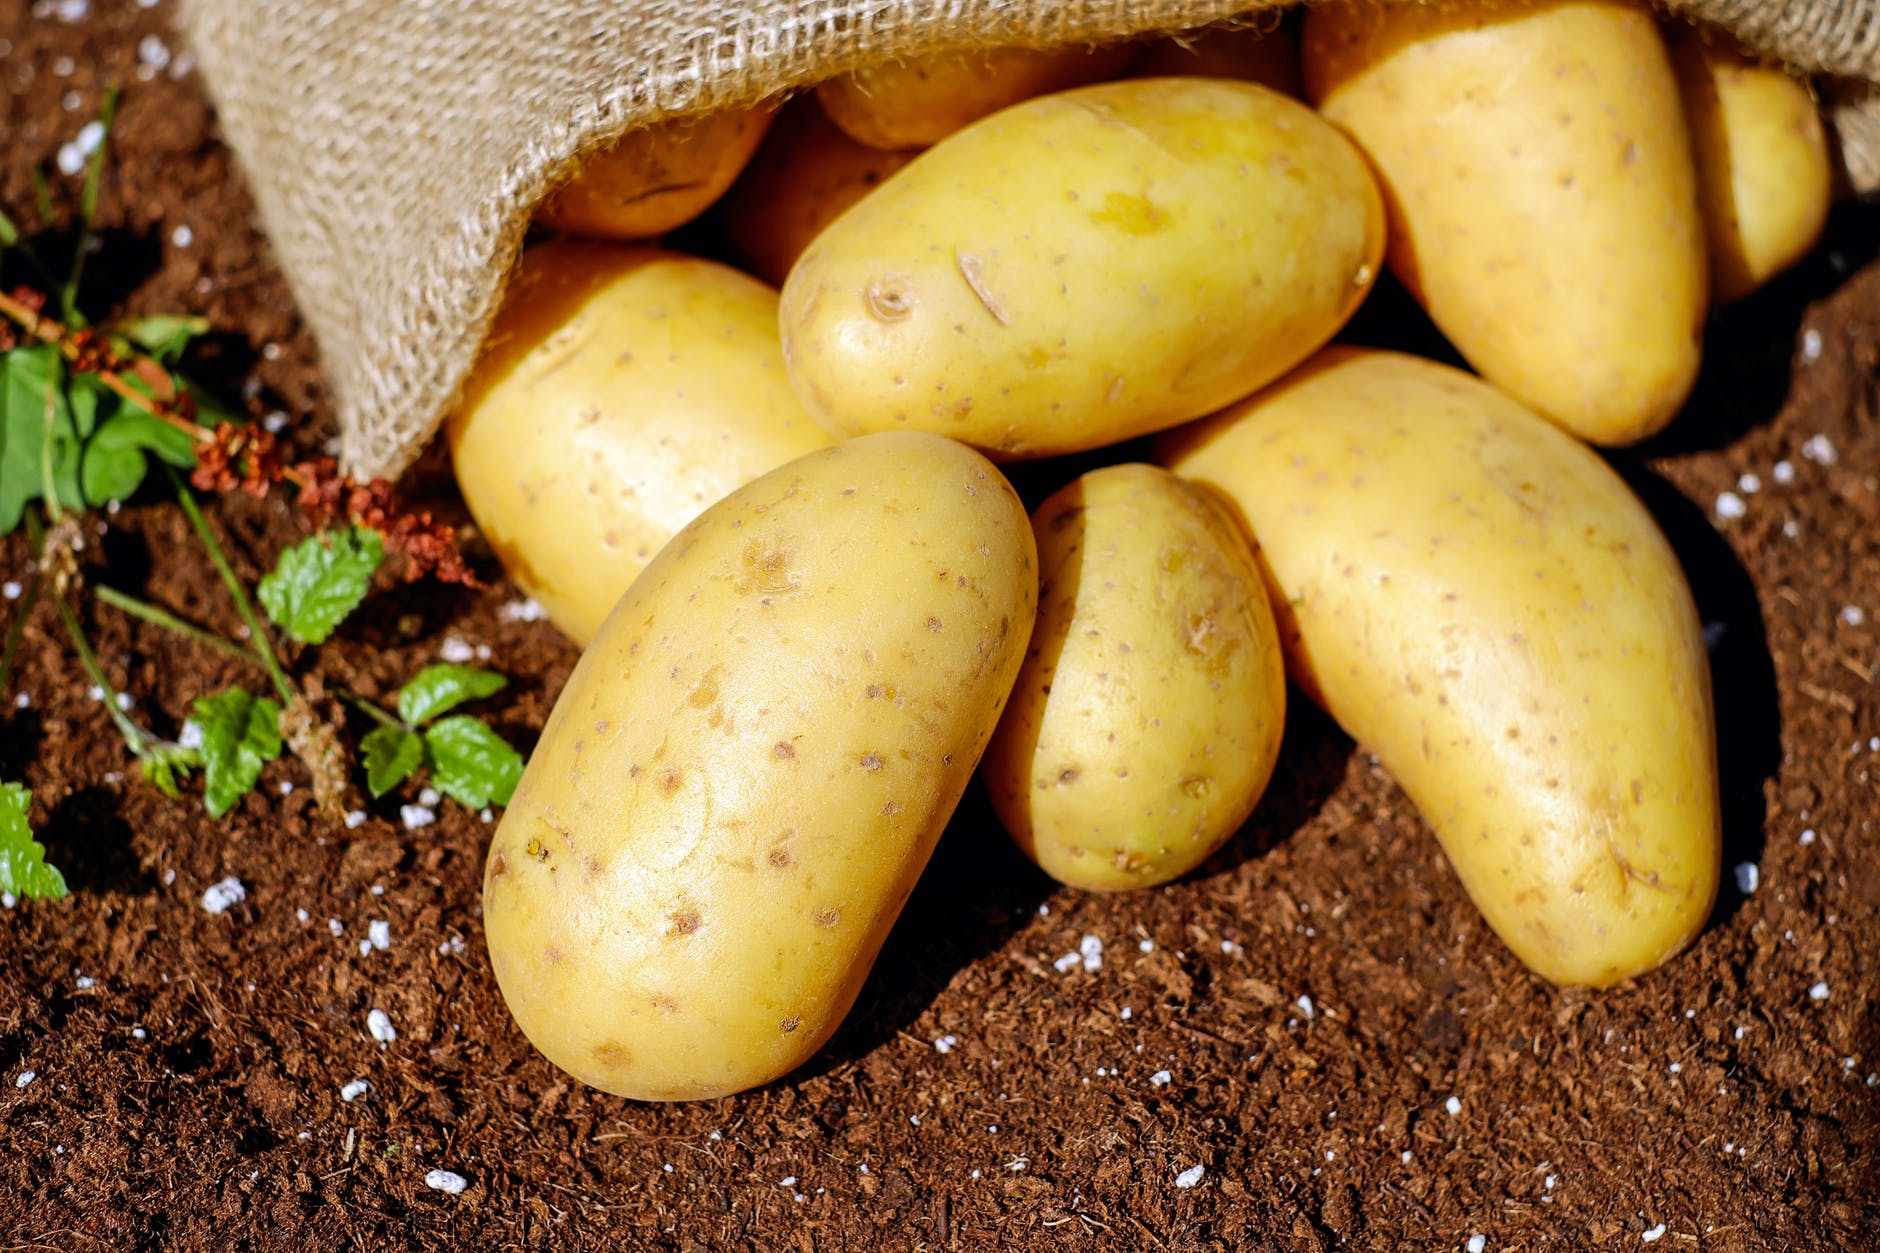 potatoes - most popular foods in the world